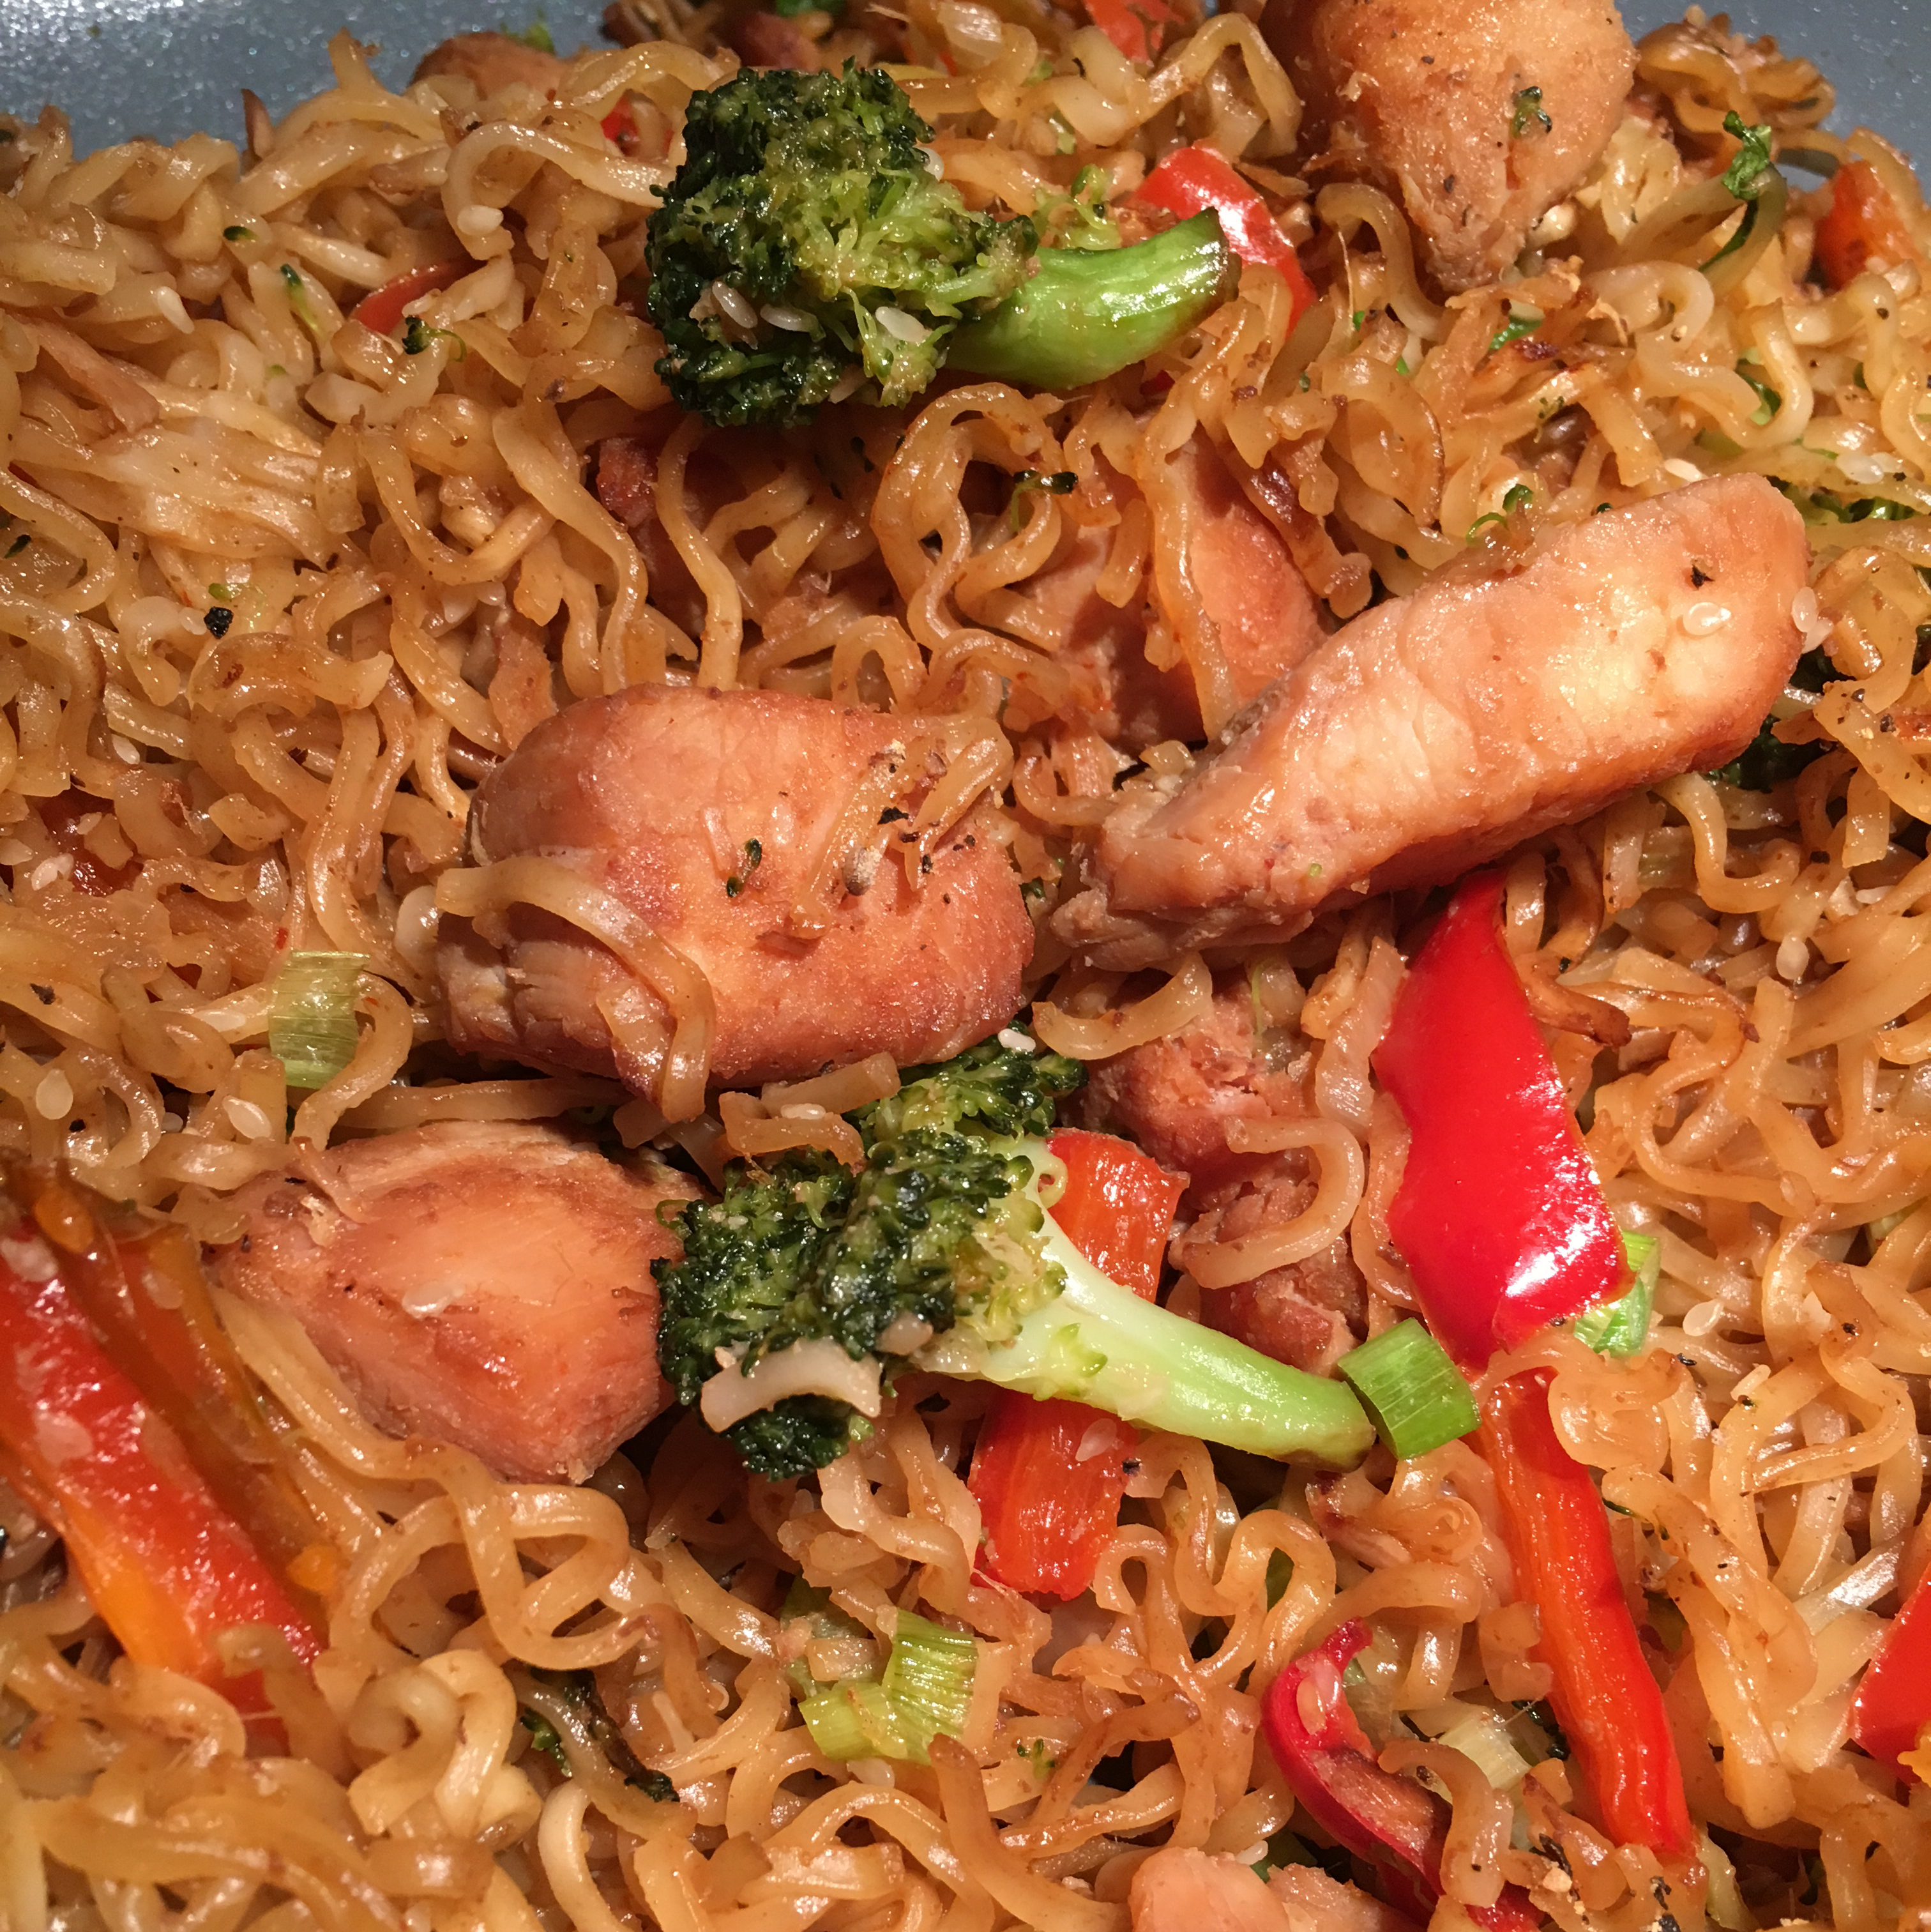 Ramen Noodle Stir-Fry with Chicken and Vegetables christinek